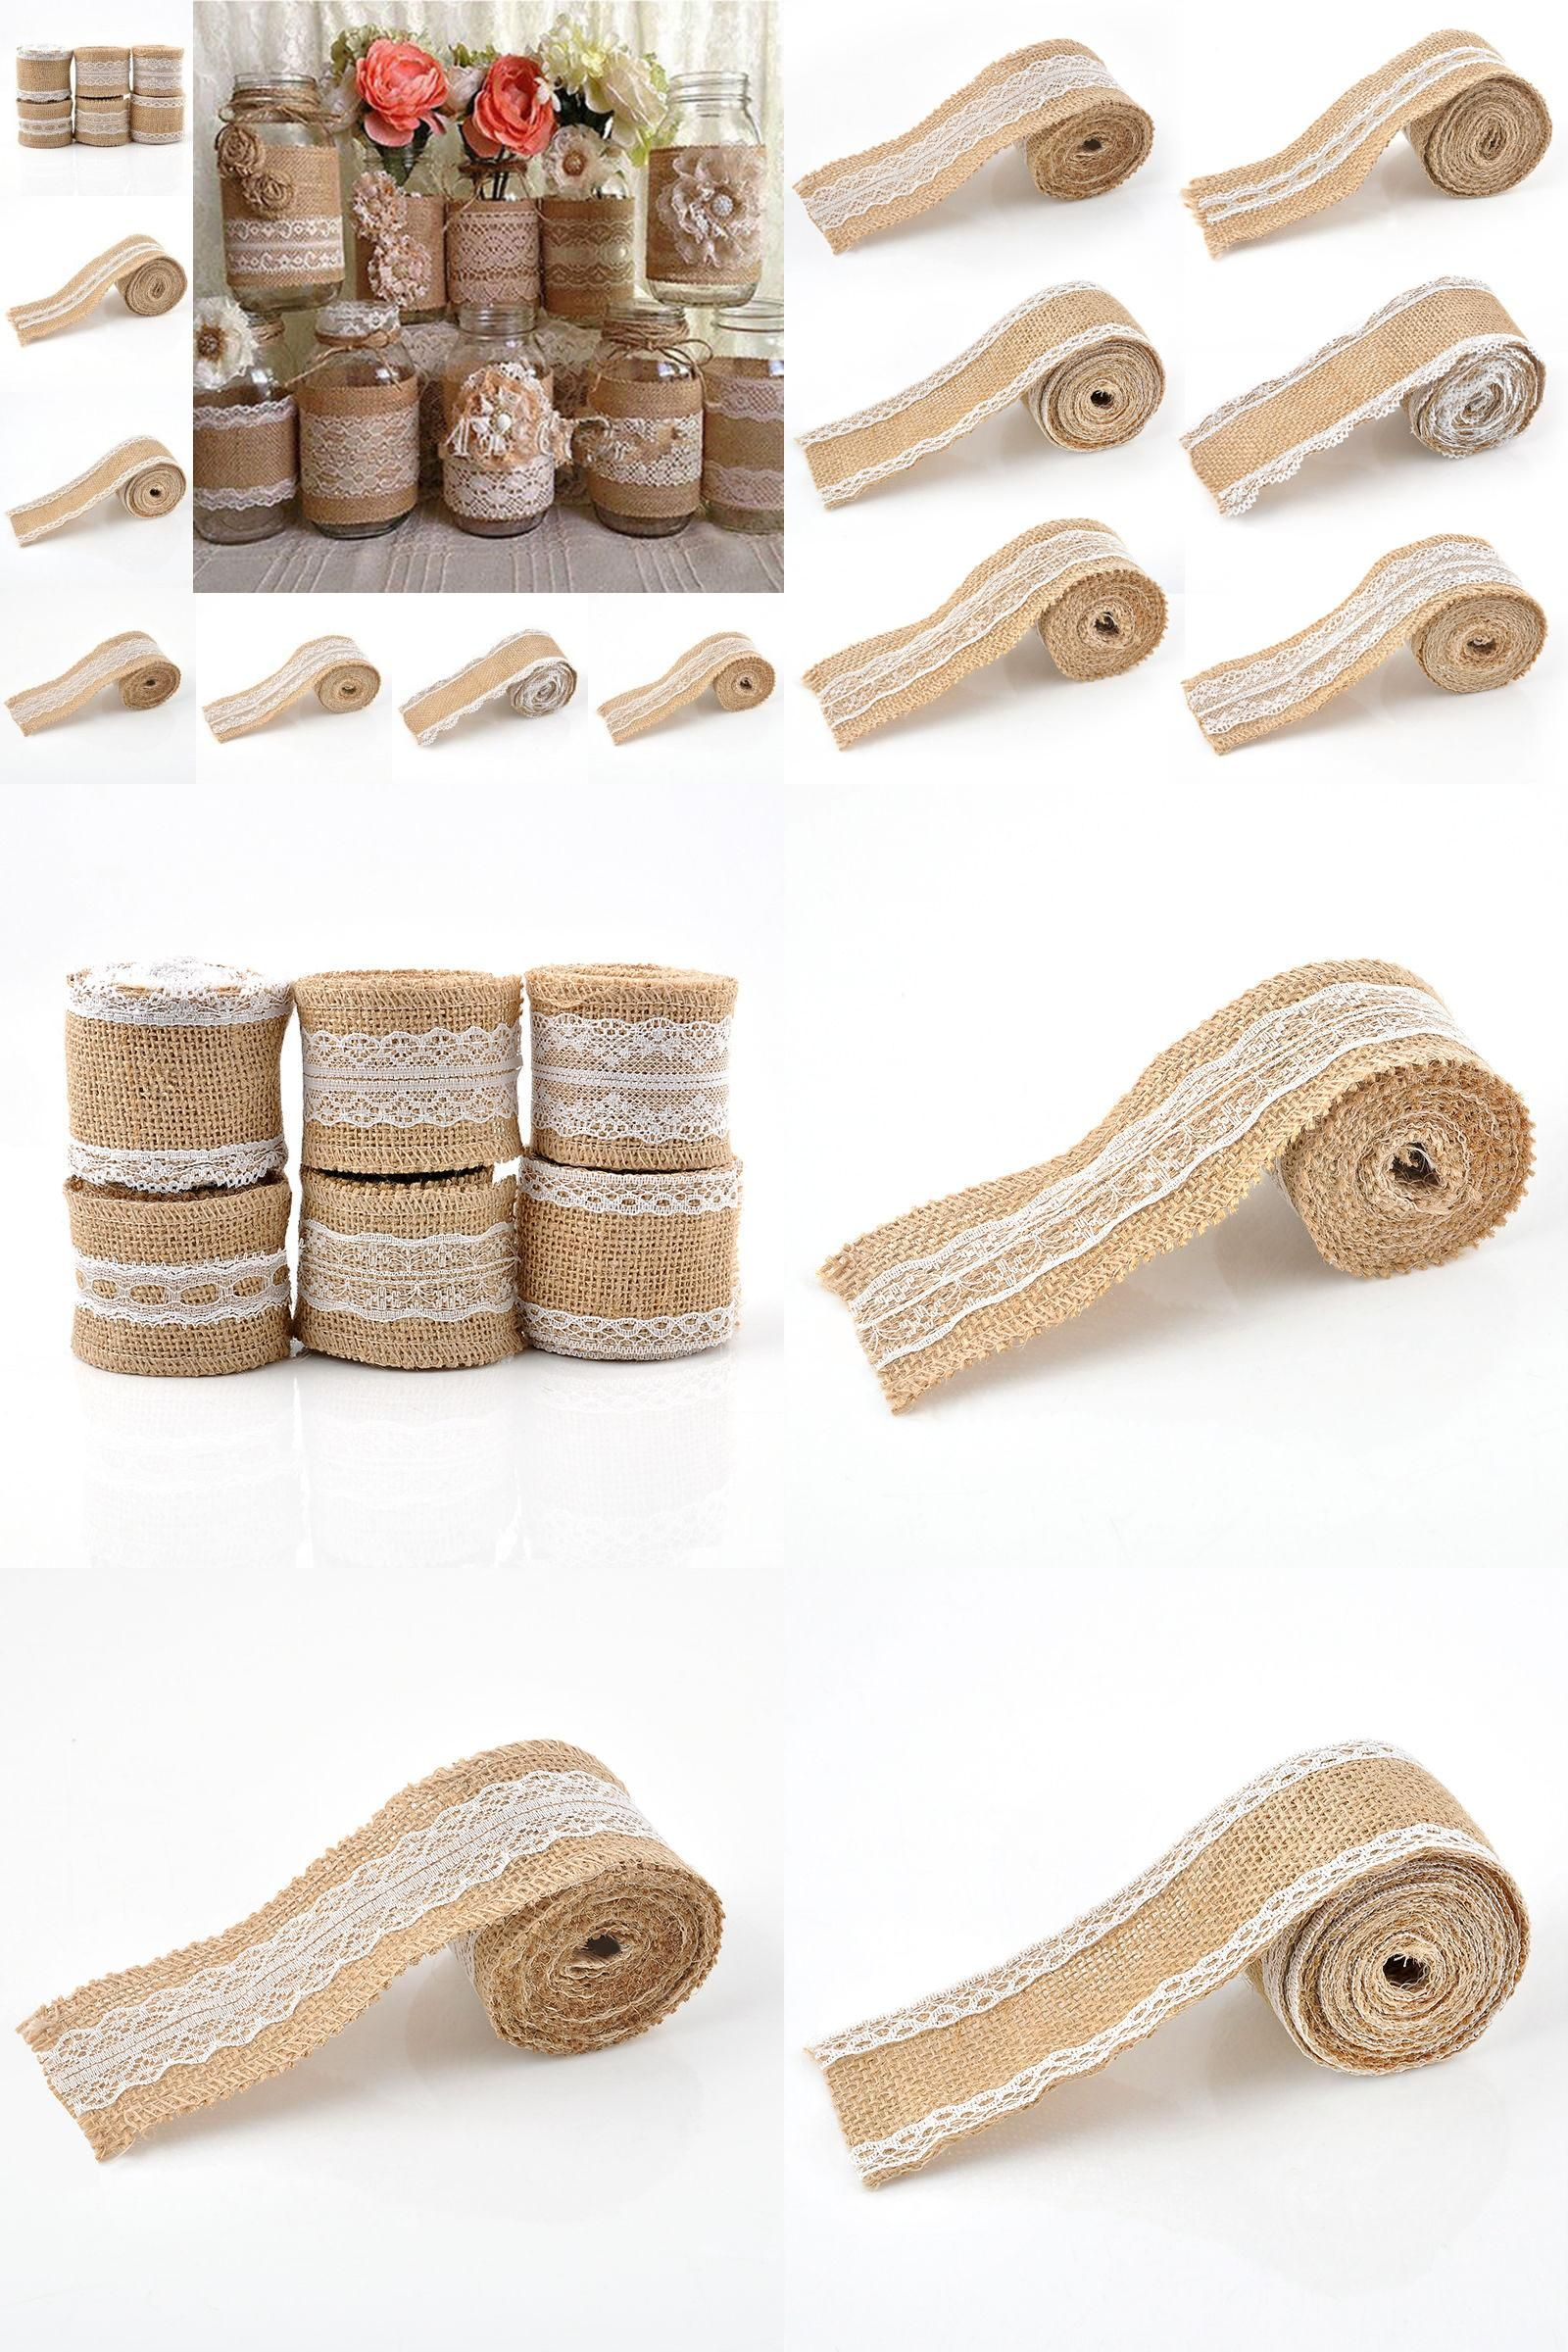 Visit To Buy 2016 2m Vintage Jute Burlap Hessian Ribbon Roll With Lace Trims Tape Rustic Wedding Party Decor Weddin Sewing Ribbon Fabric Crafts Sewing Crafts